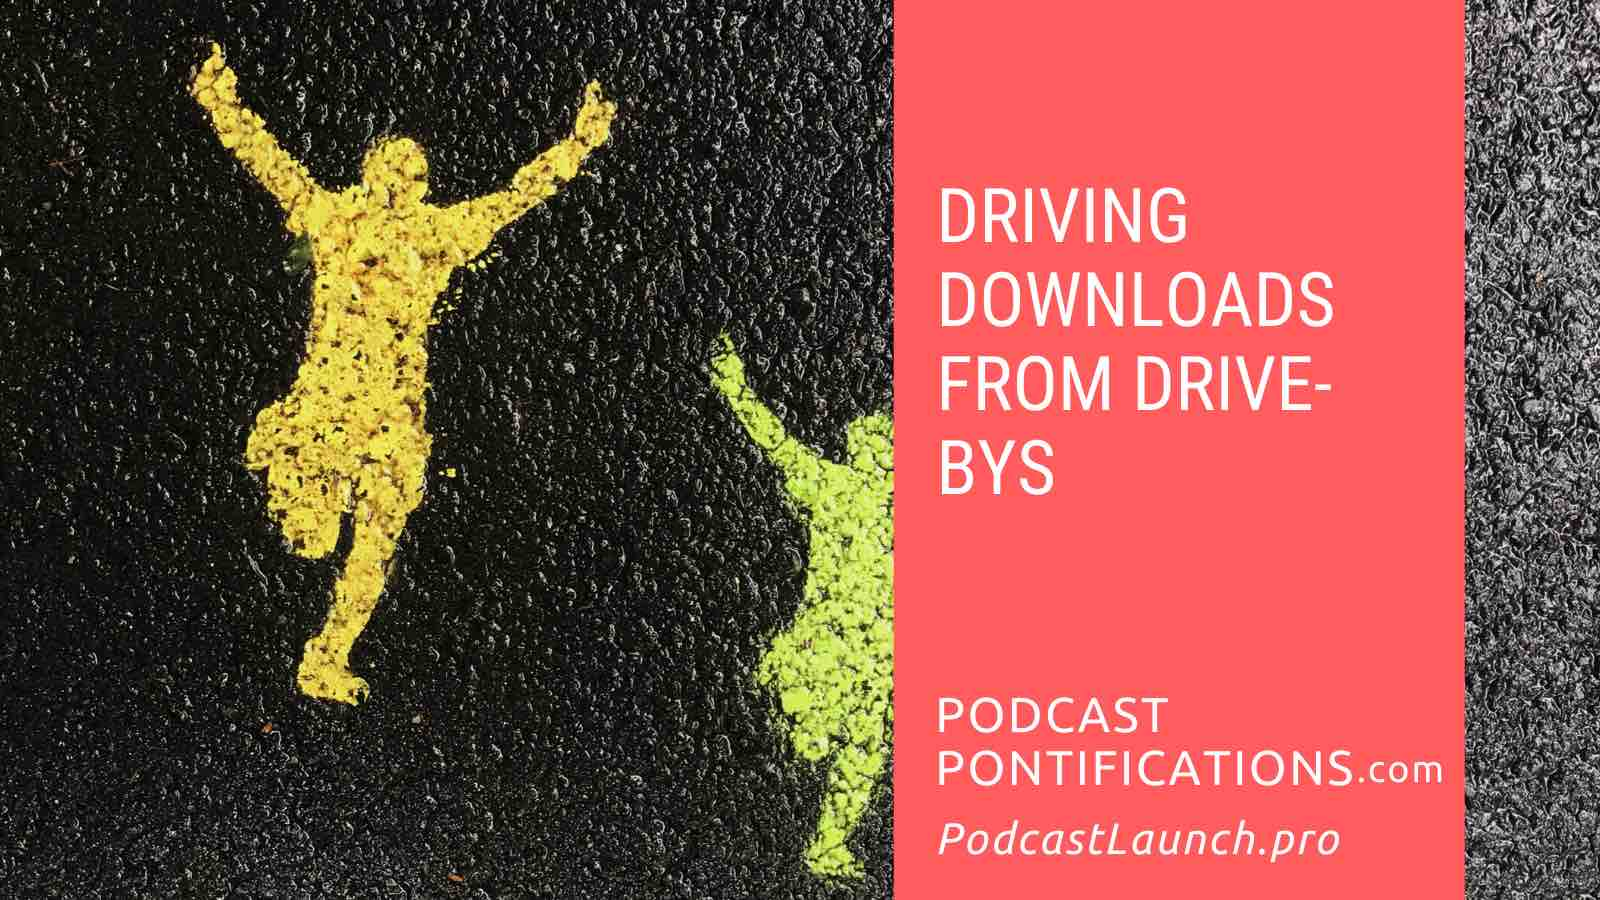 Driving Downloads From Drive-Bys